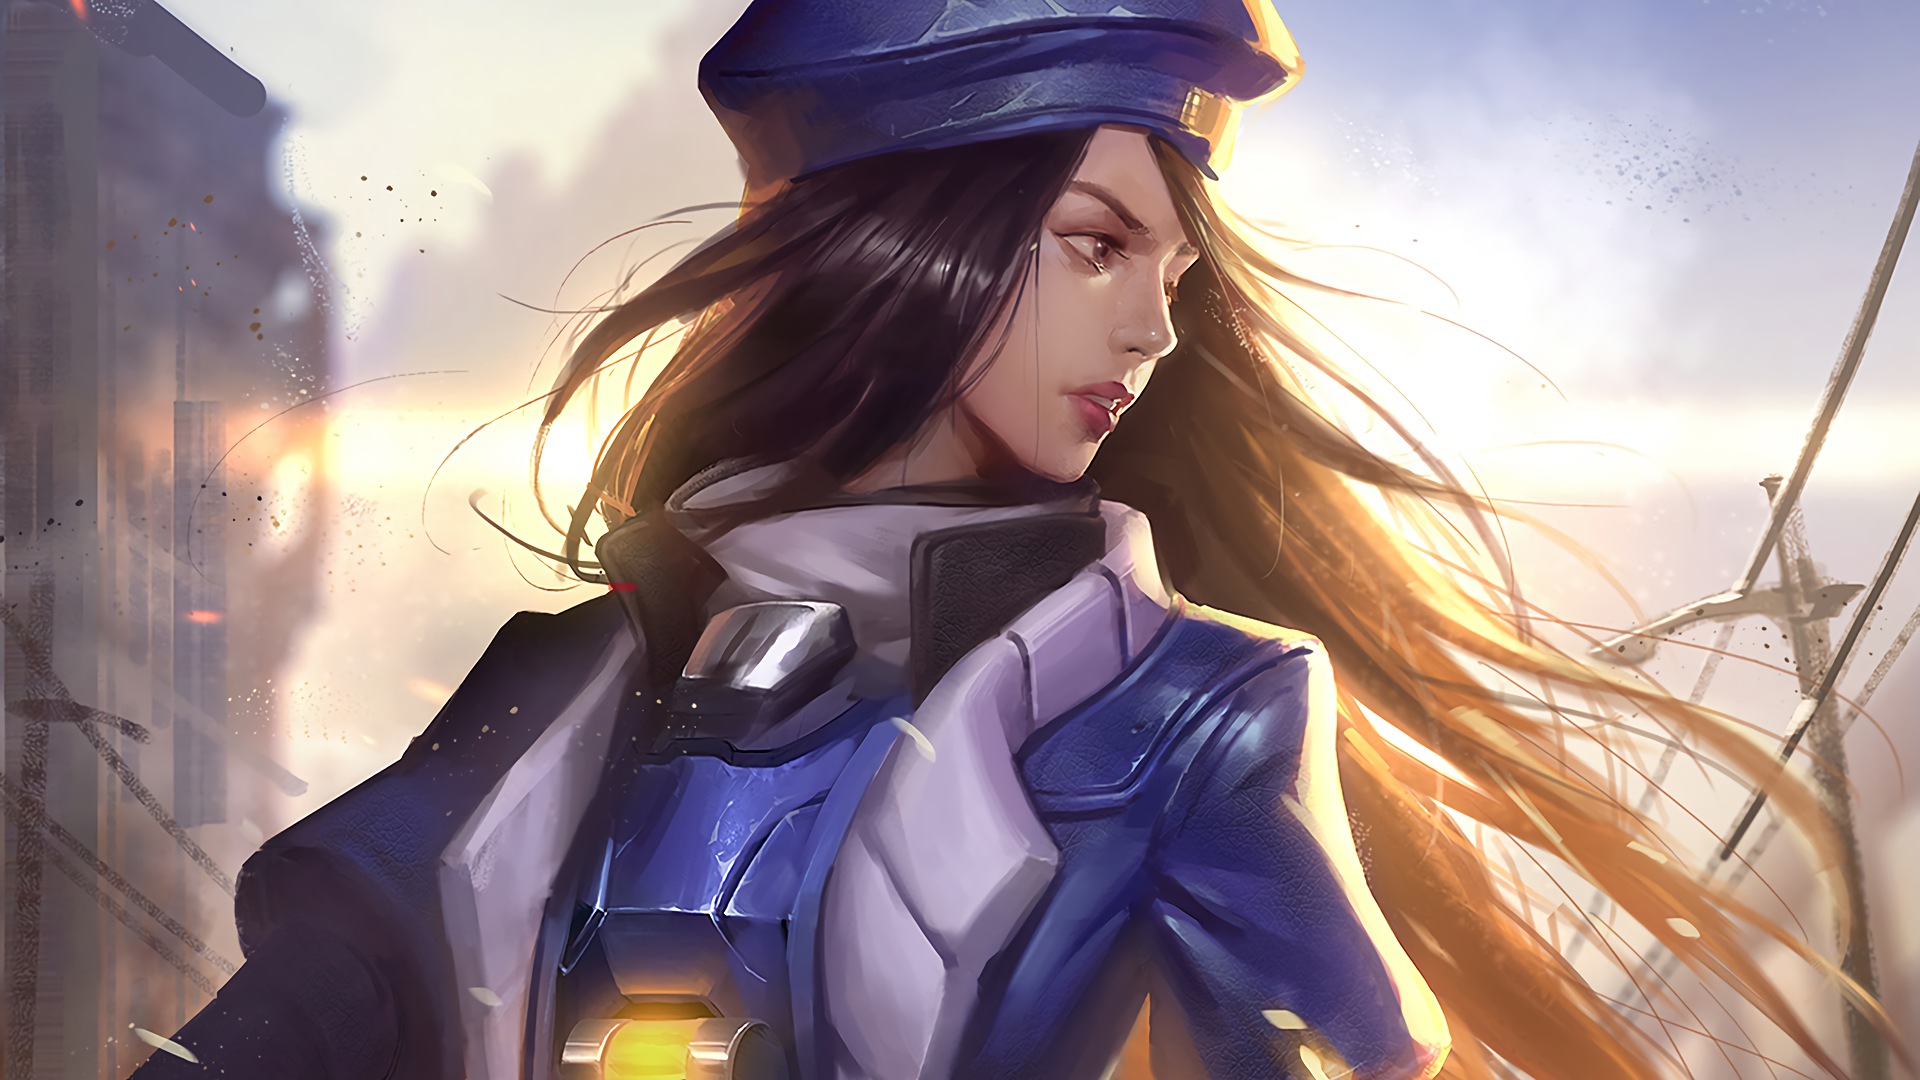 Ana Overwatch Artwork Hd Games 4k Wallpapers Images Backgrounds Photos And Pictures